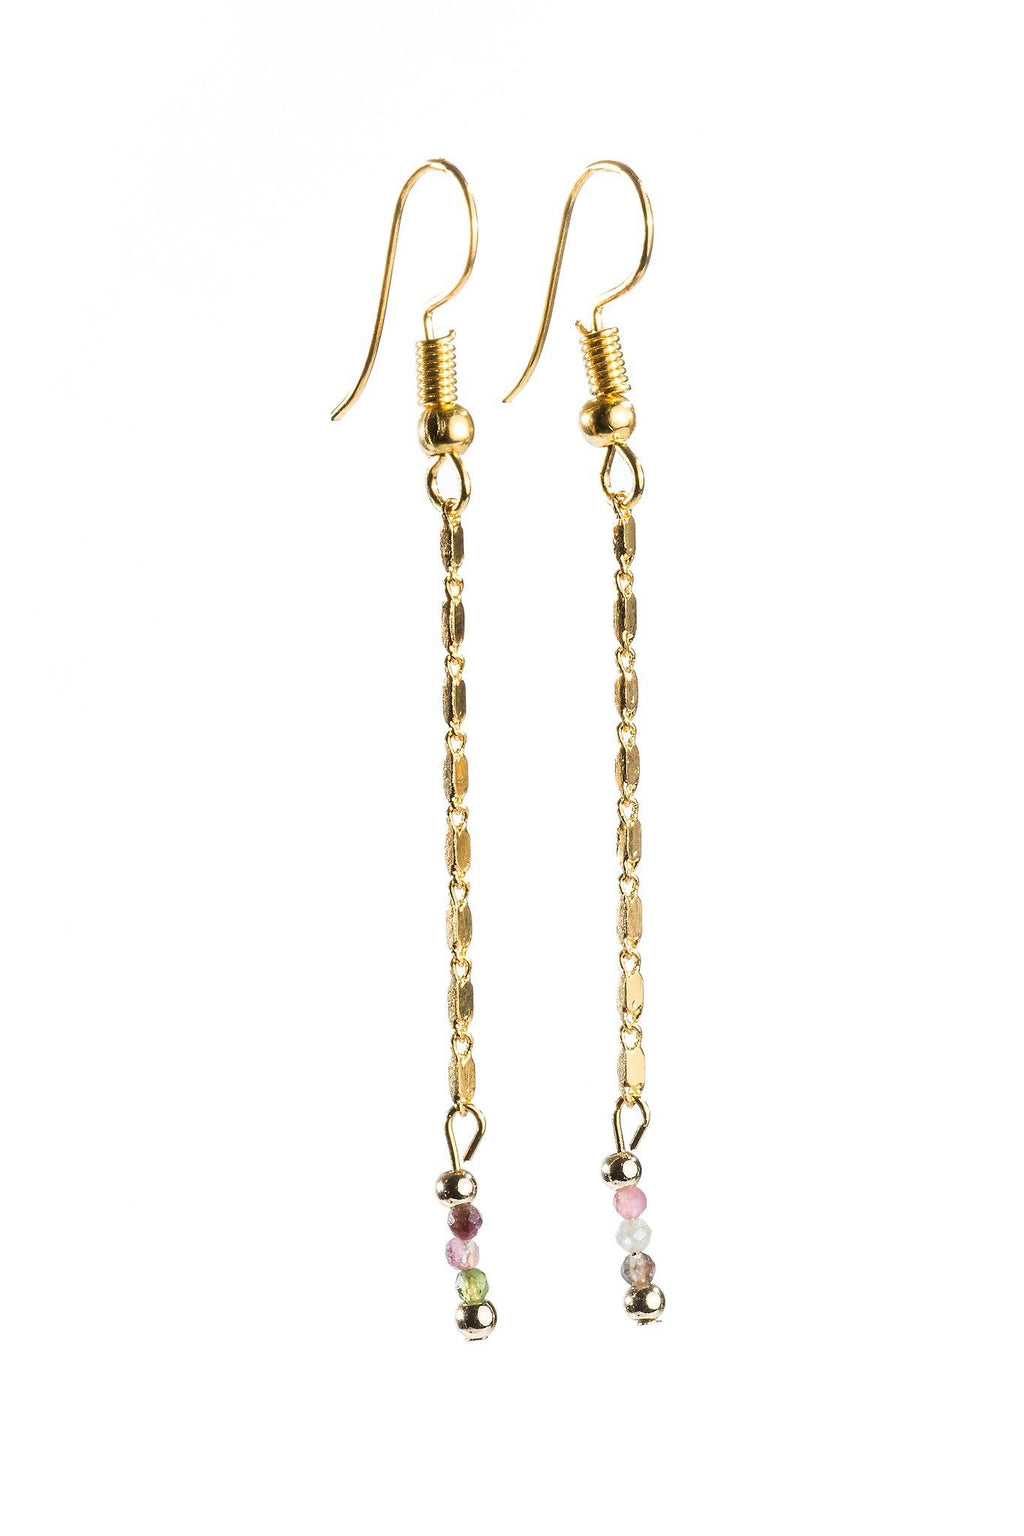 Capri in Gold | Tourmaline - Filosophy